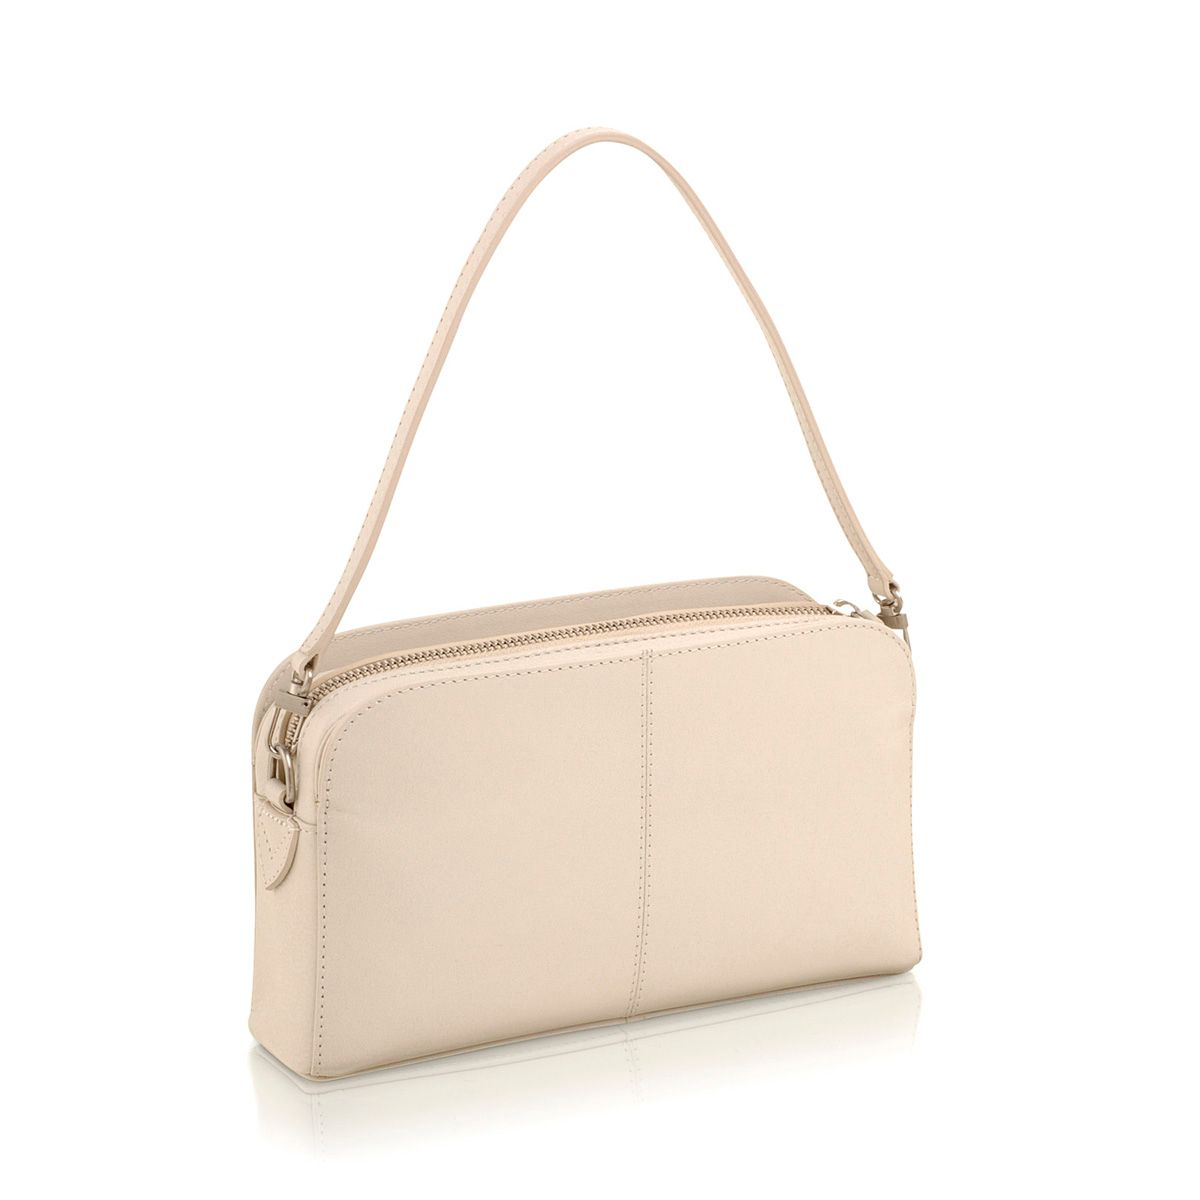 Aldgate cream mini leather shoulder bag